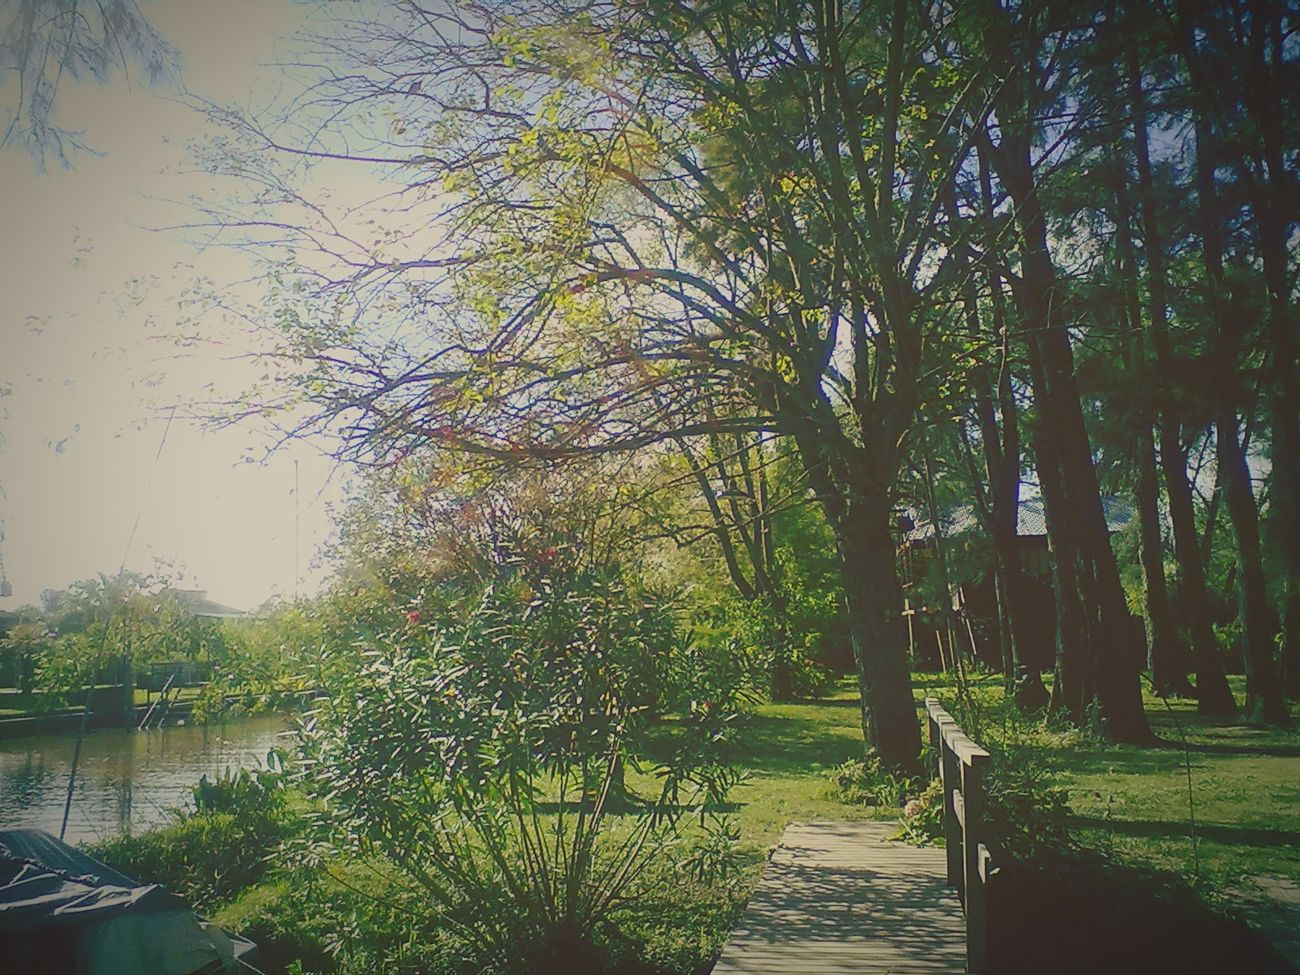 Relaxing Island Old Photos With History Old Phone Photo Riverisland Green Green Green!  Plants And Flowers